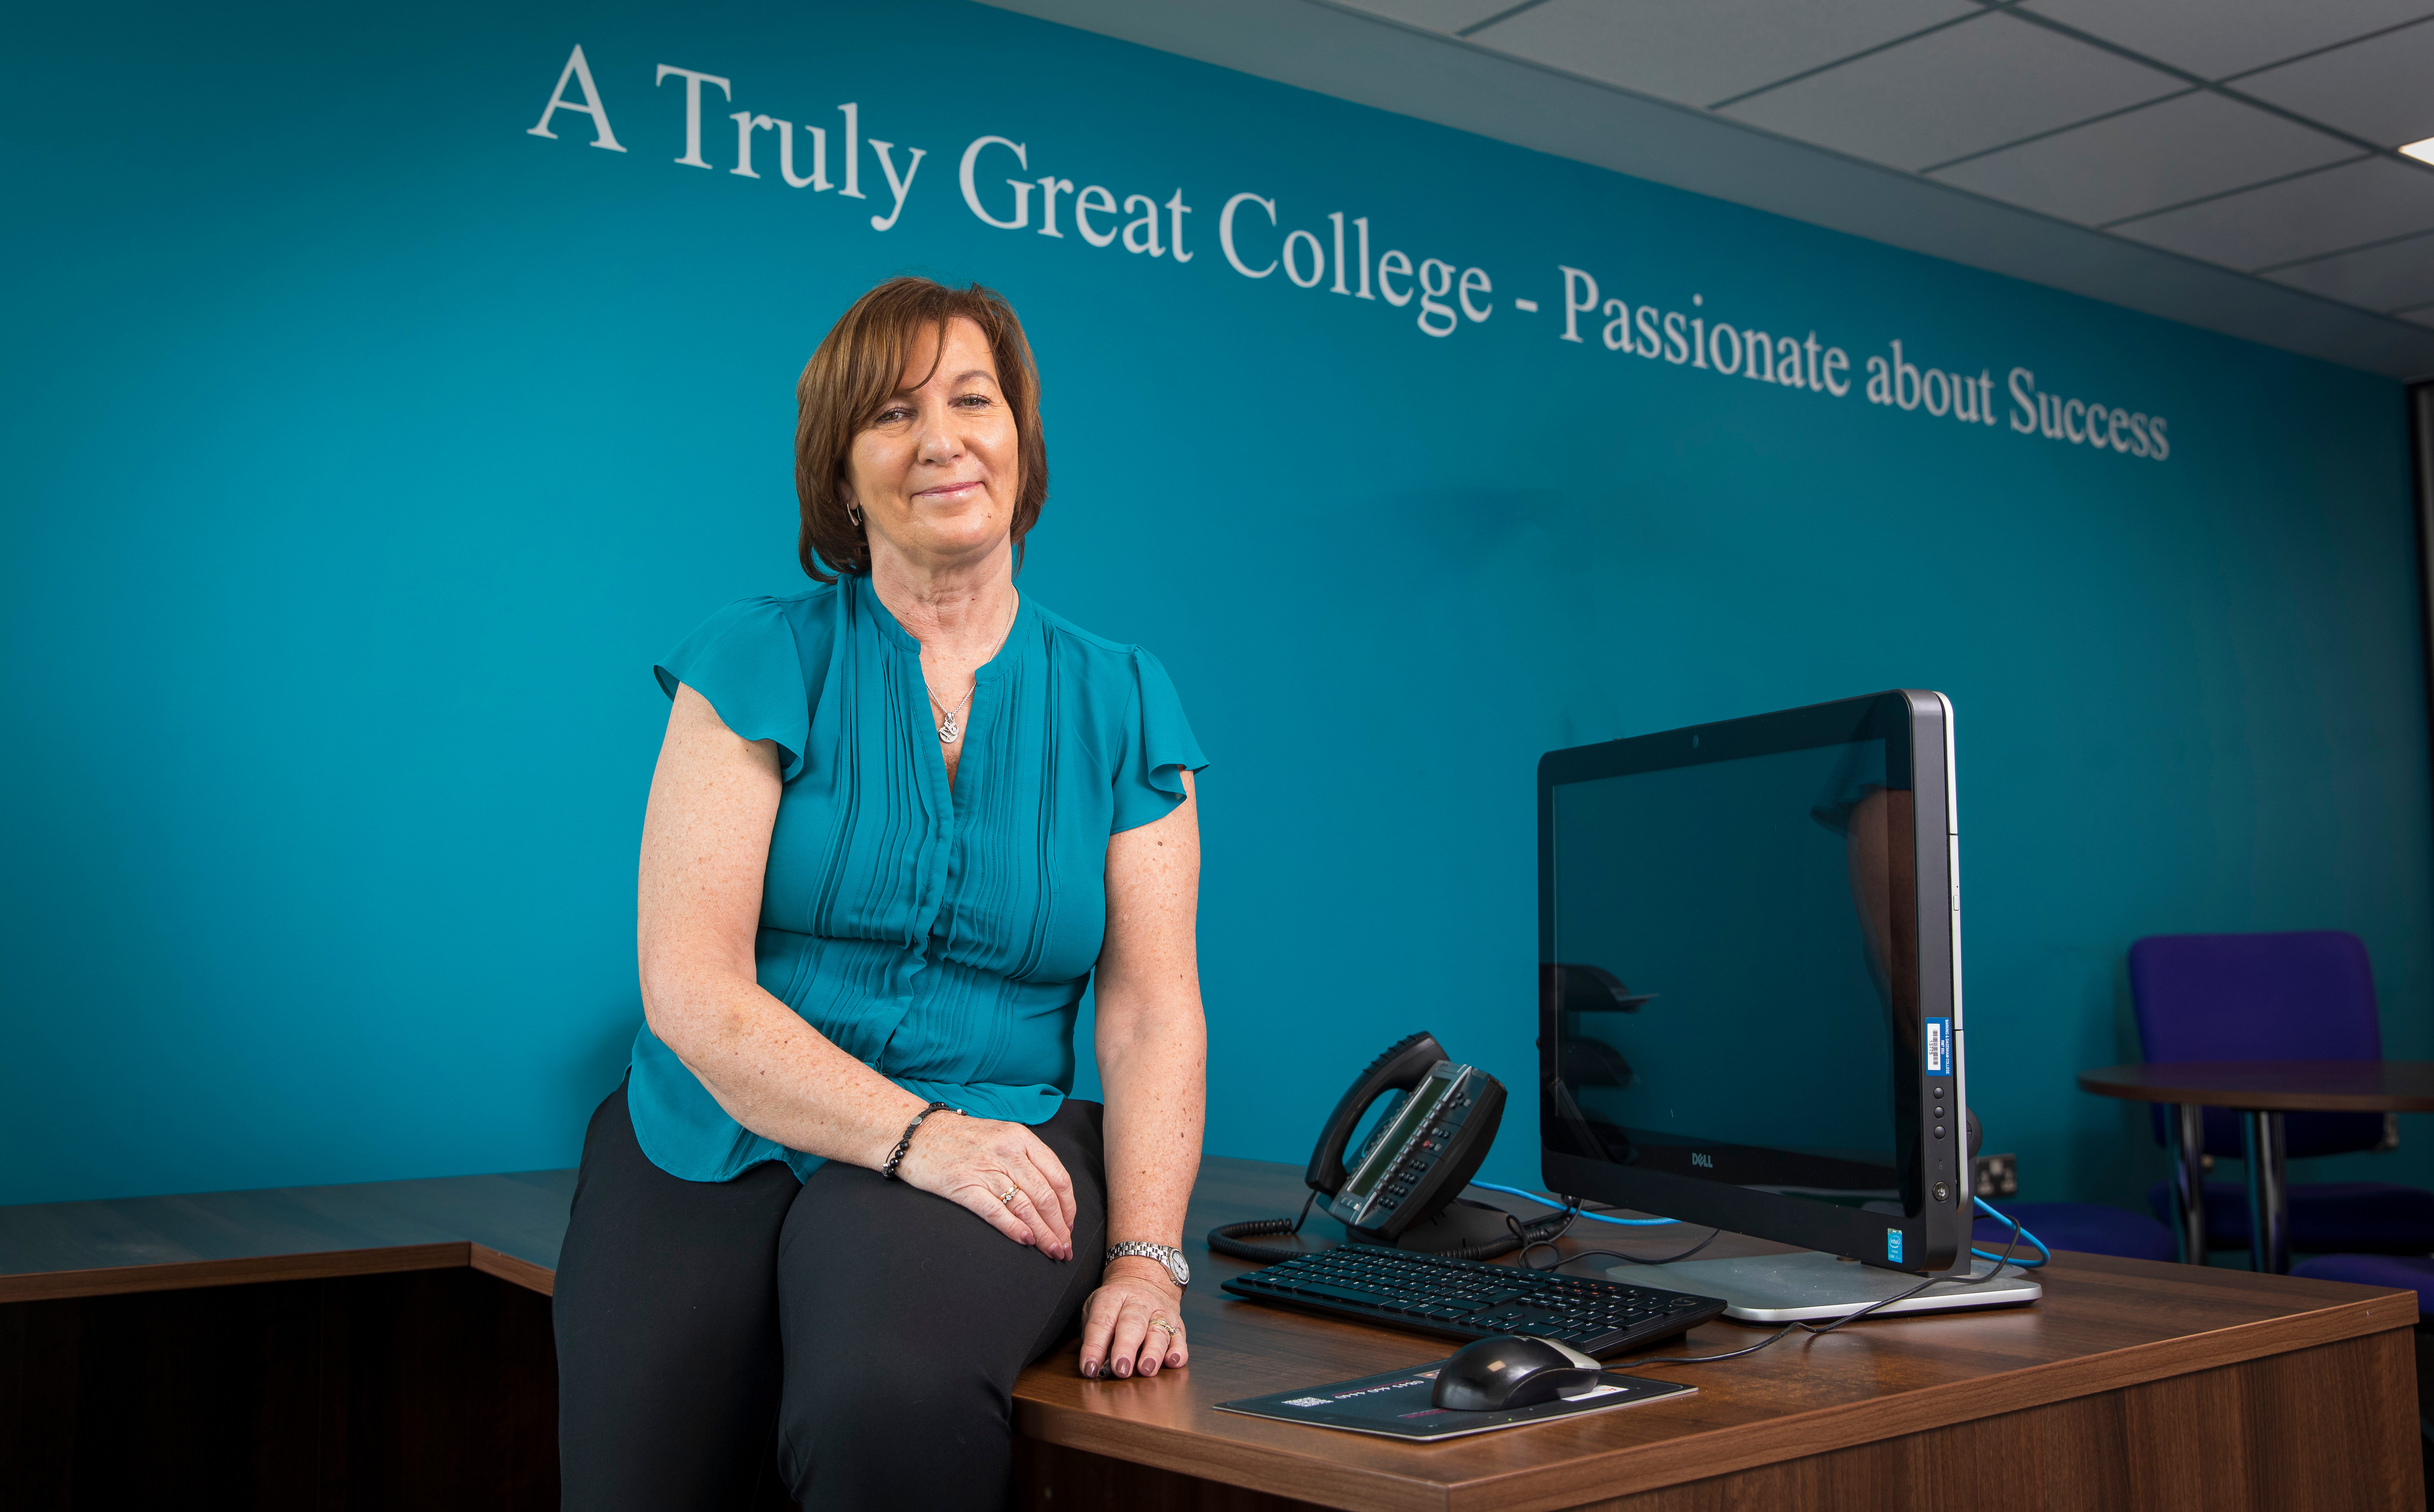 Careers adviser Julie Maling helps candidates find their strengths and interests